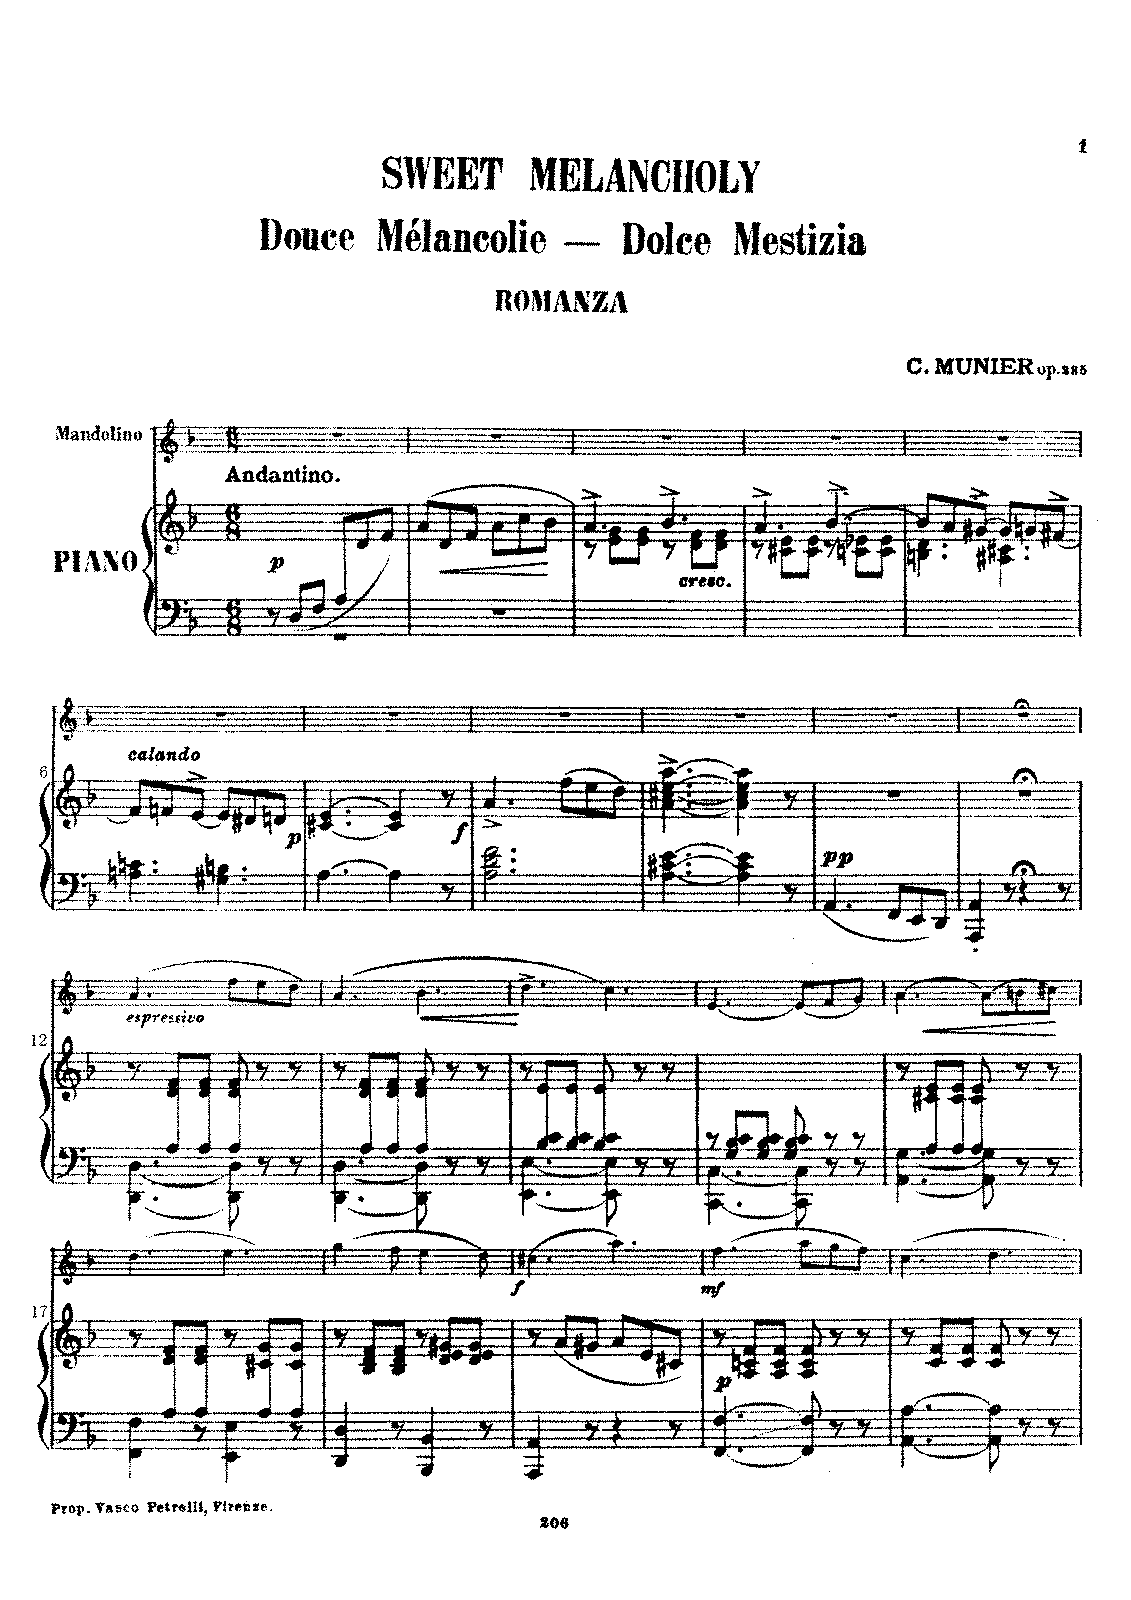 PMLP640467-Sweet Melancholy, Romanza Op.235 C.Munier piano part.pdf